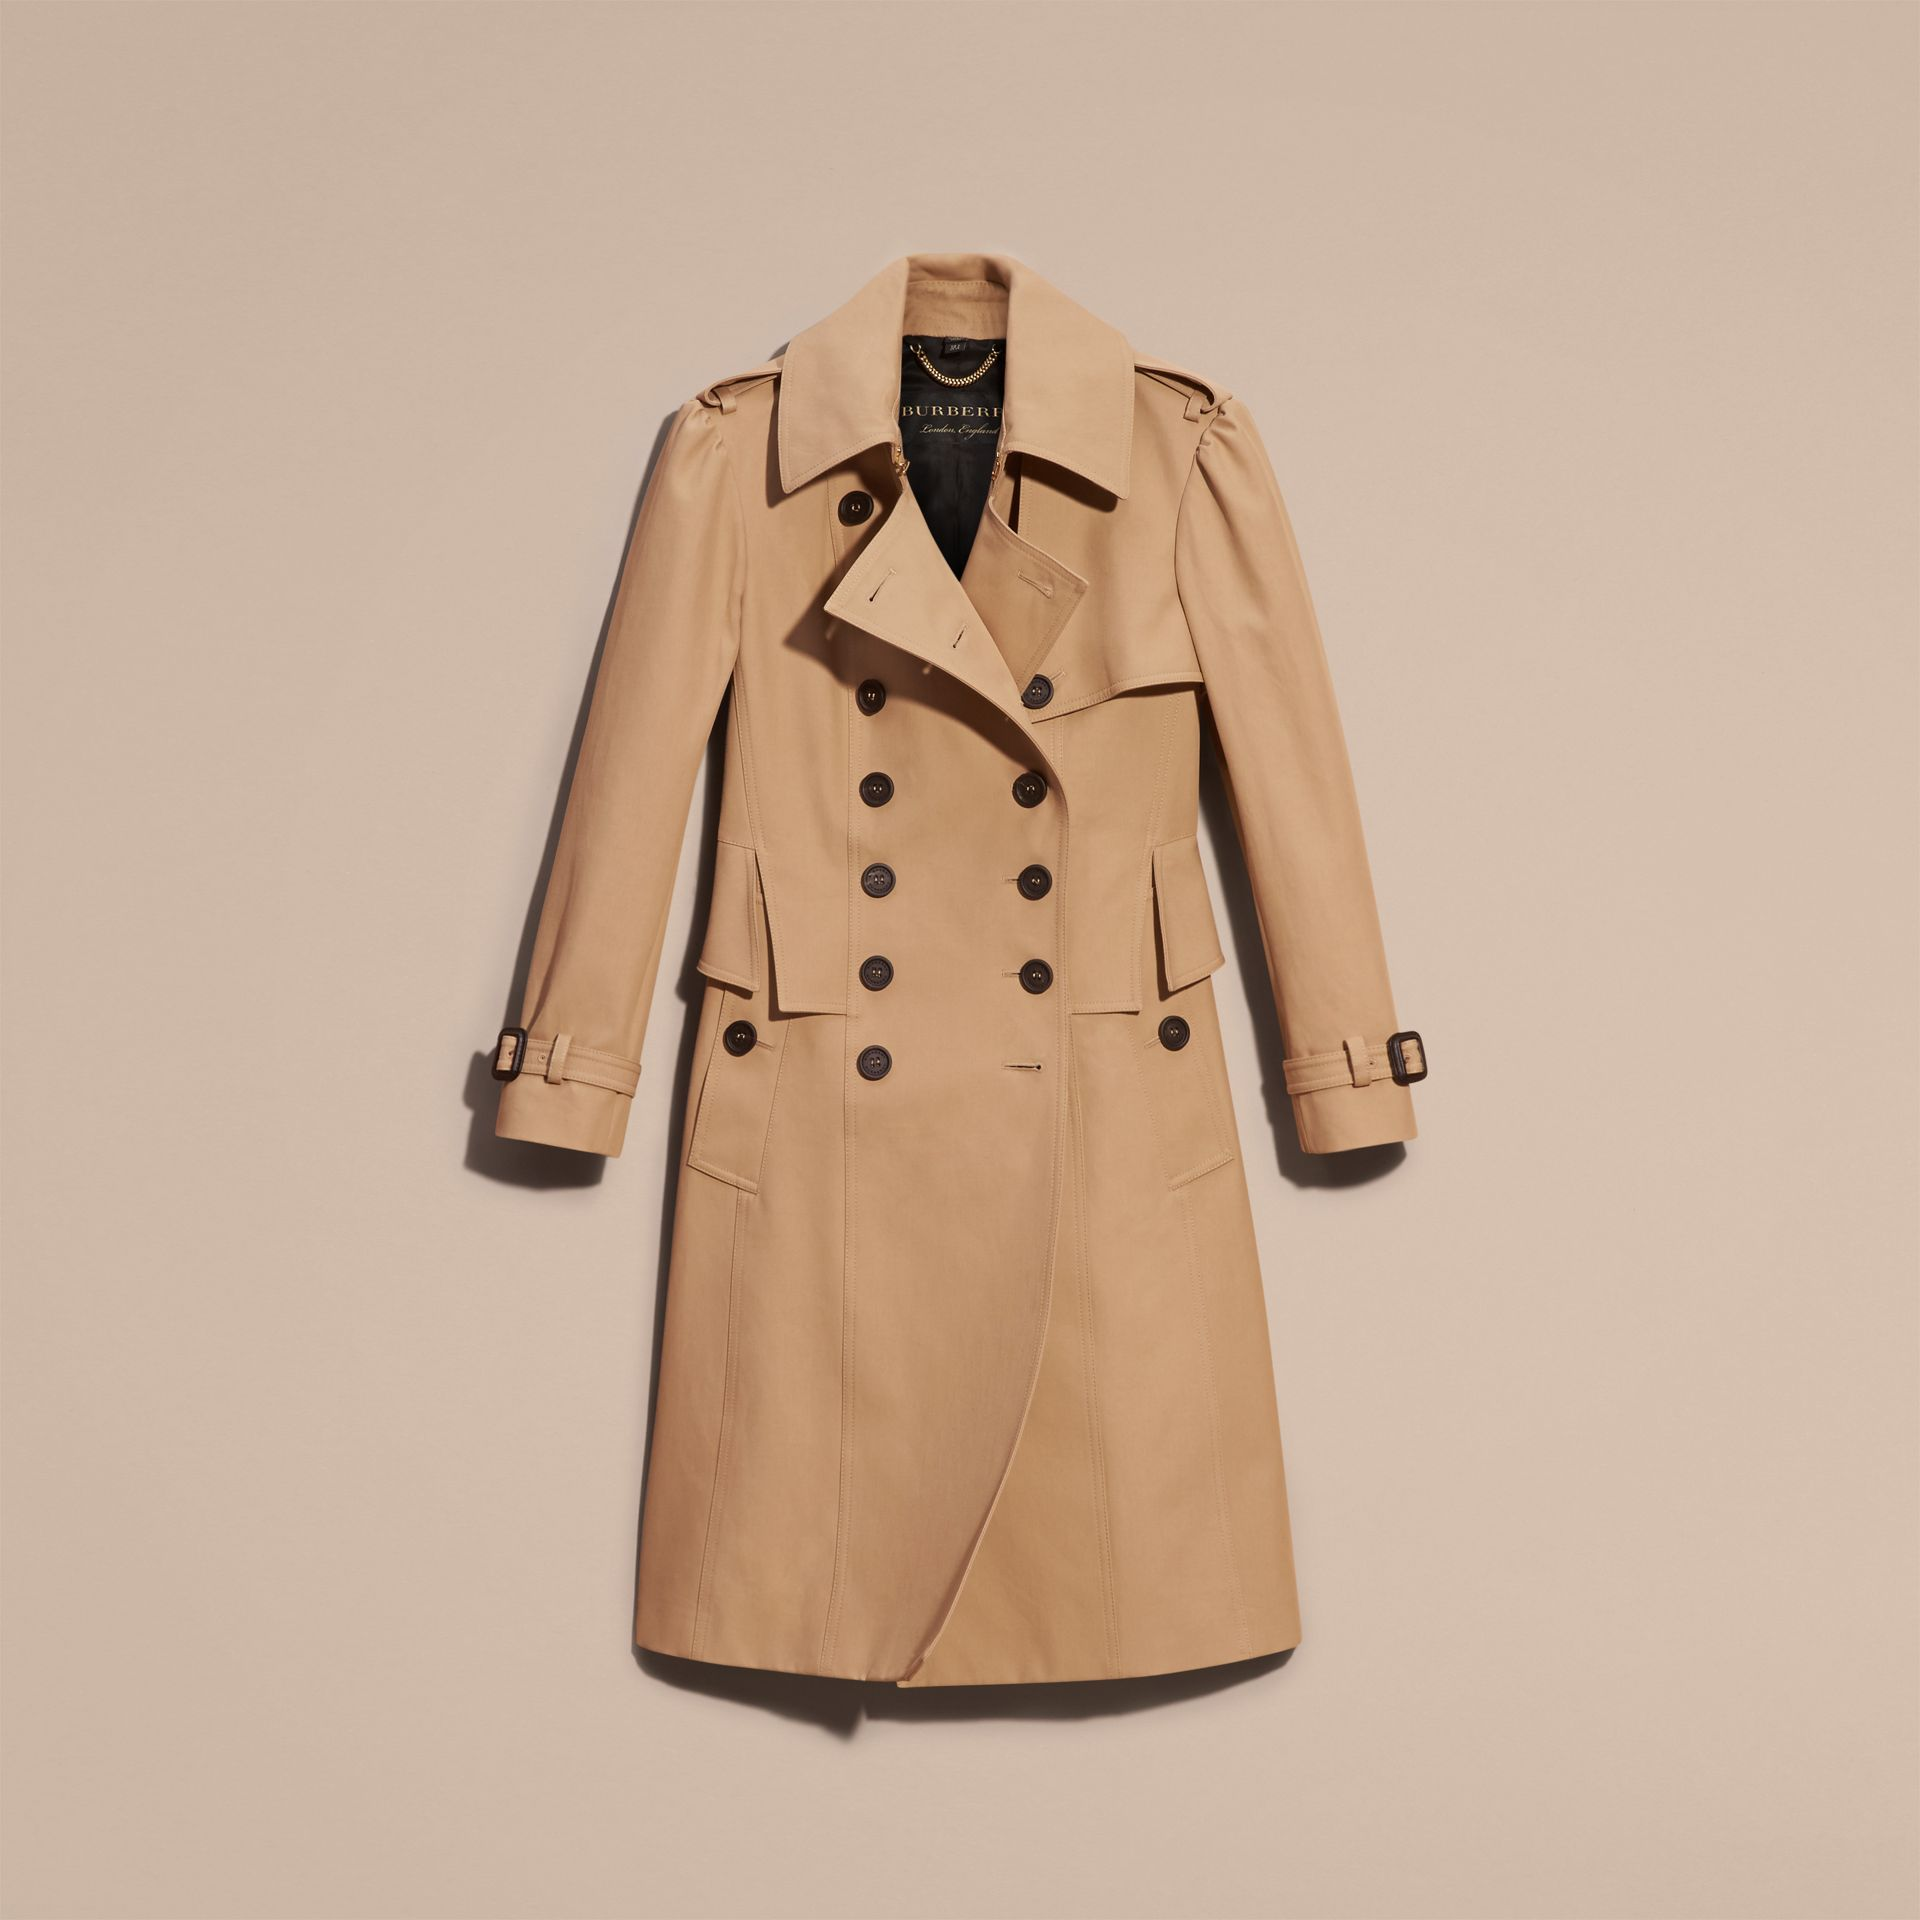 Cotton Gabardine Trench Coat with Notched Waist - gallery image 4